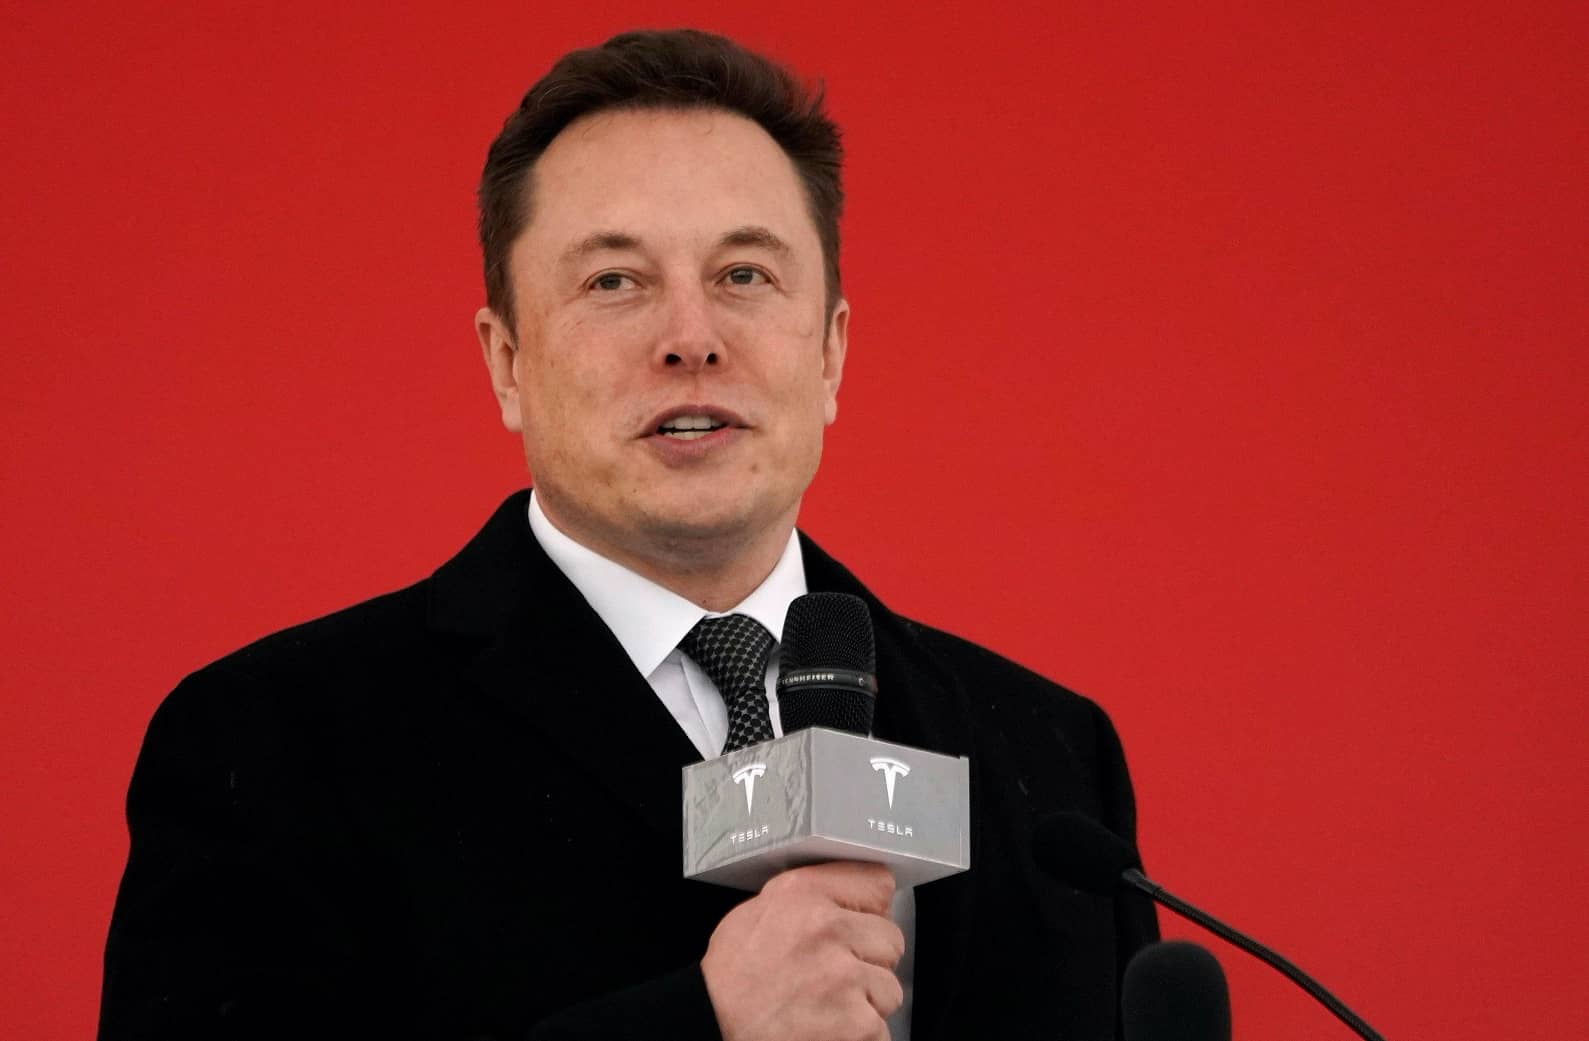 TESLA HITS TARGET TO QUALIFY CEO ELON MUSK FOR BIG PAYDAY